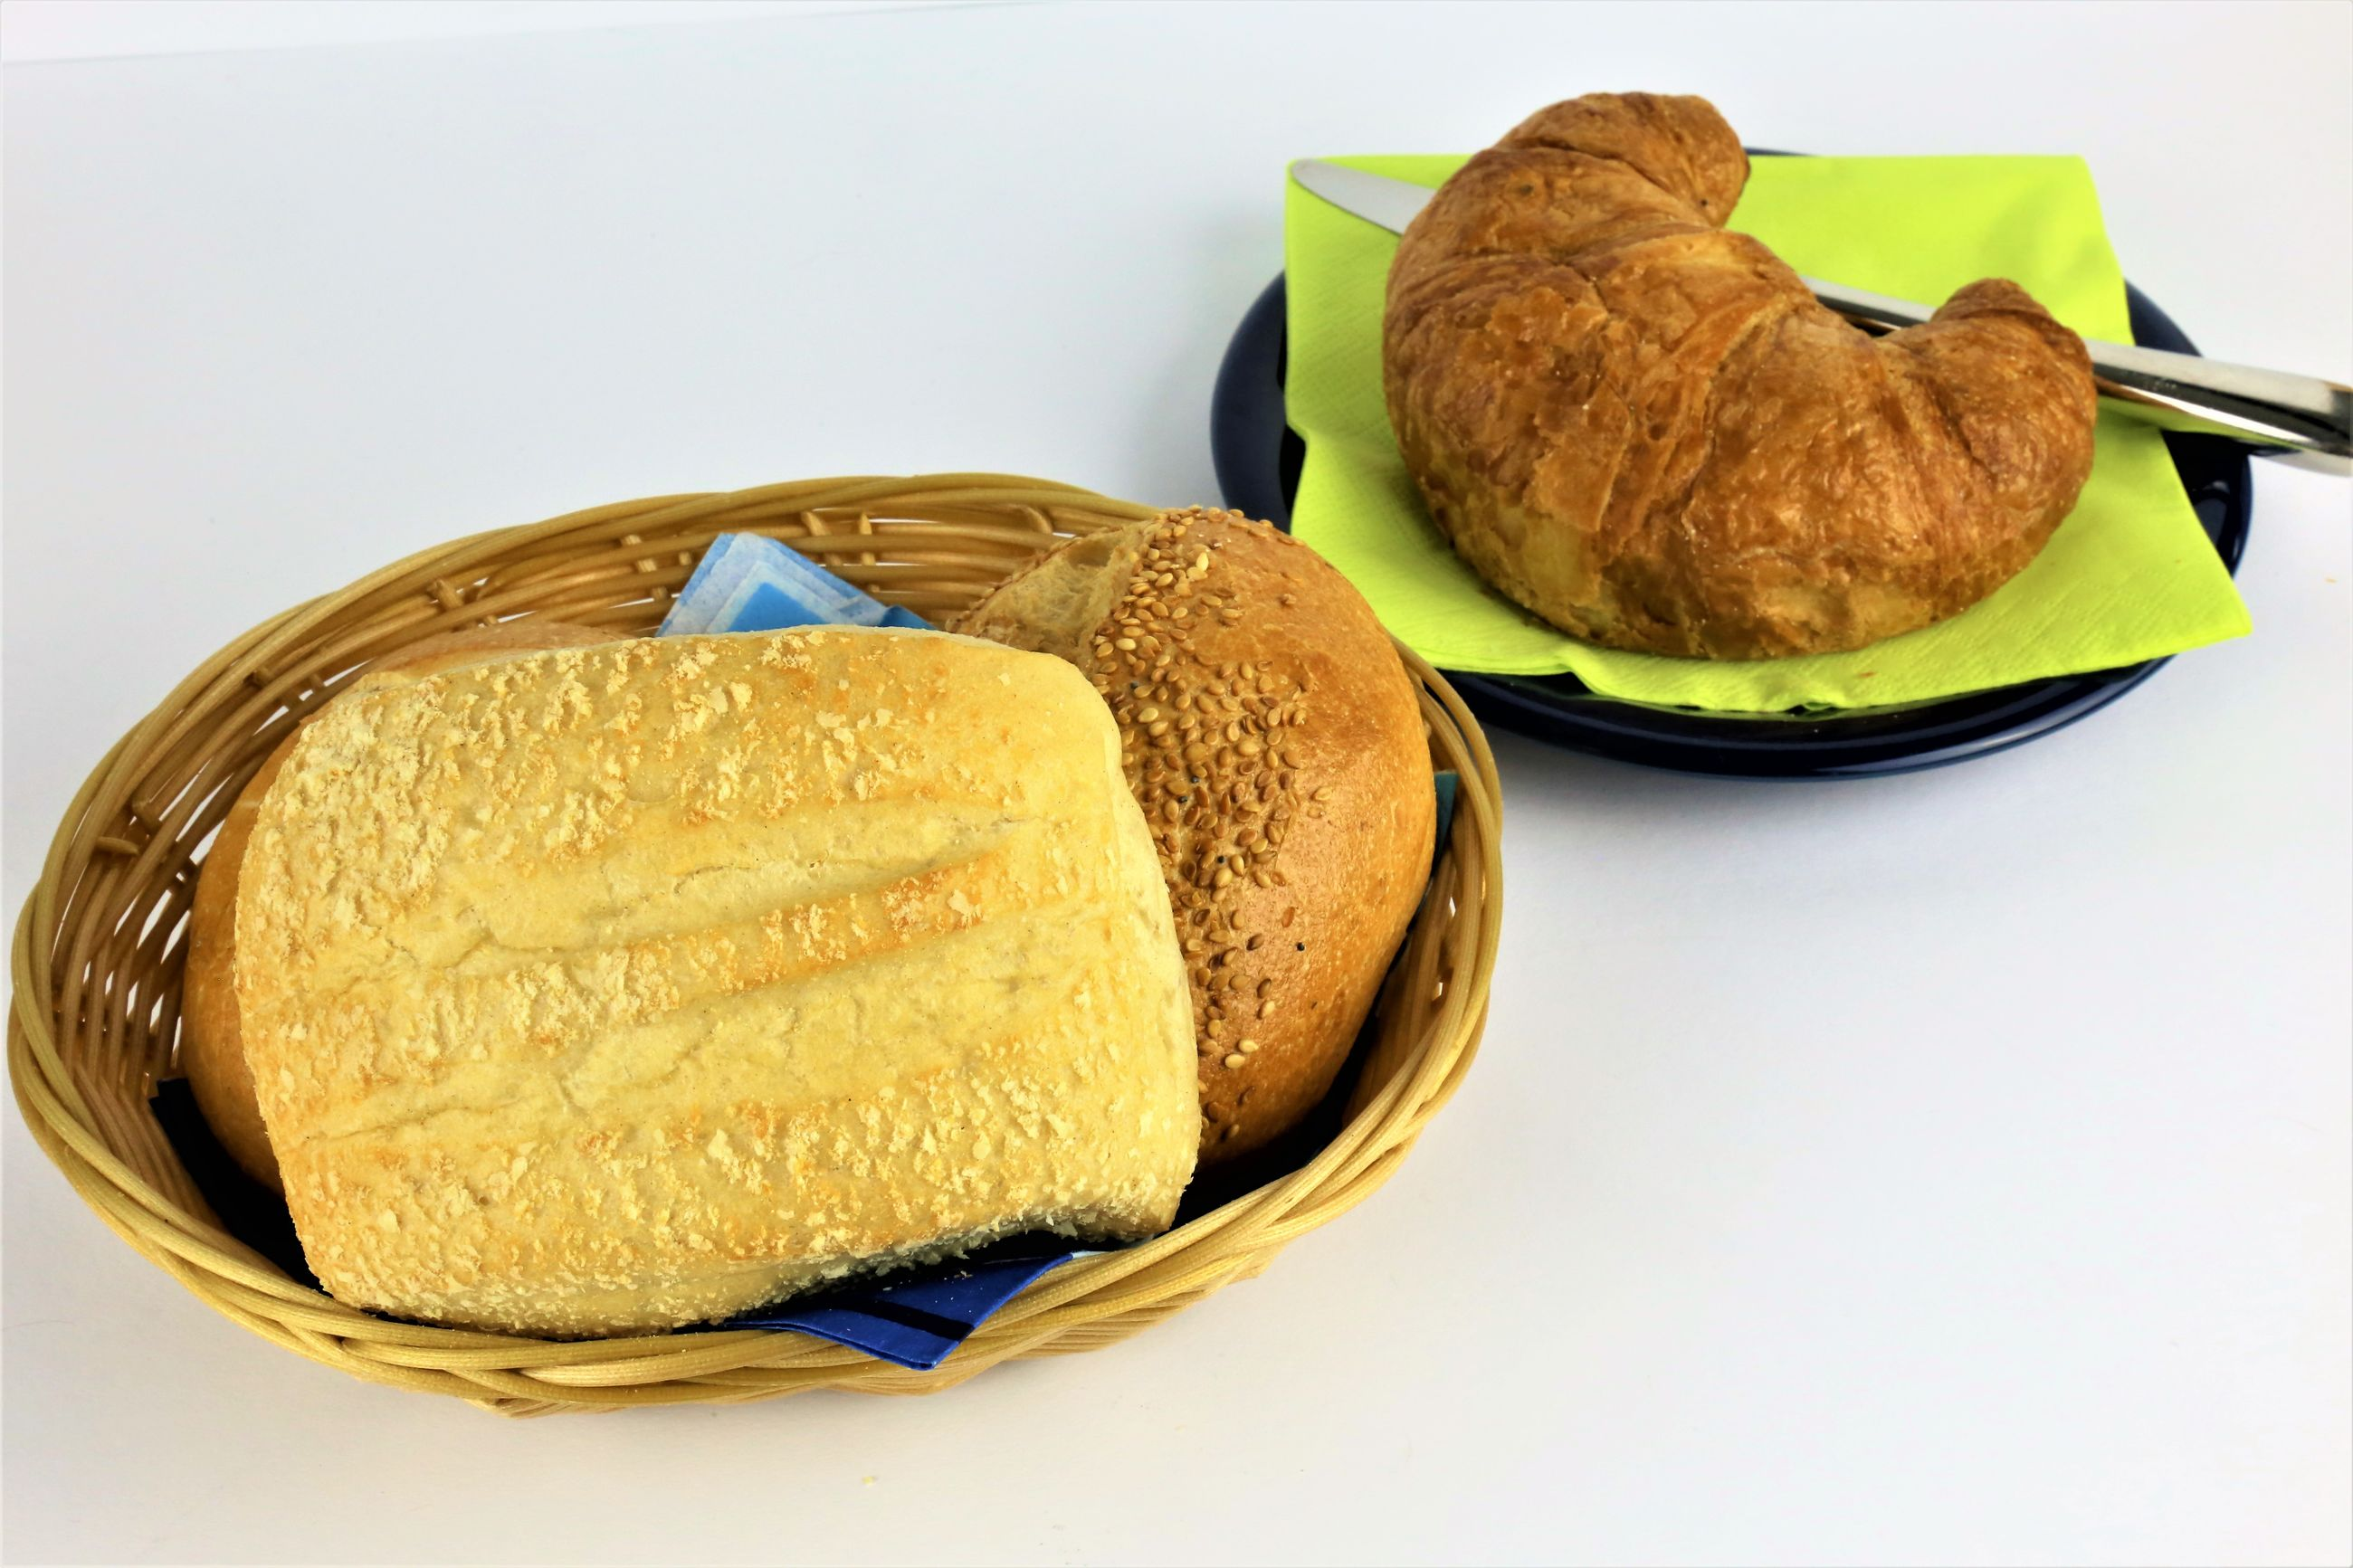 Close-up of breads over white background